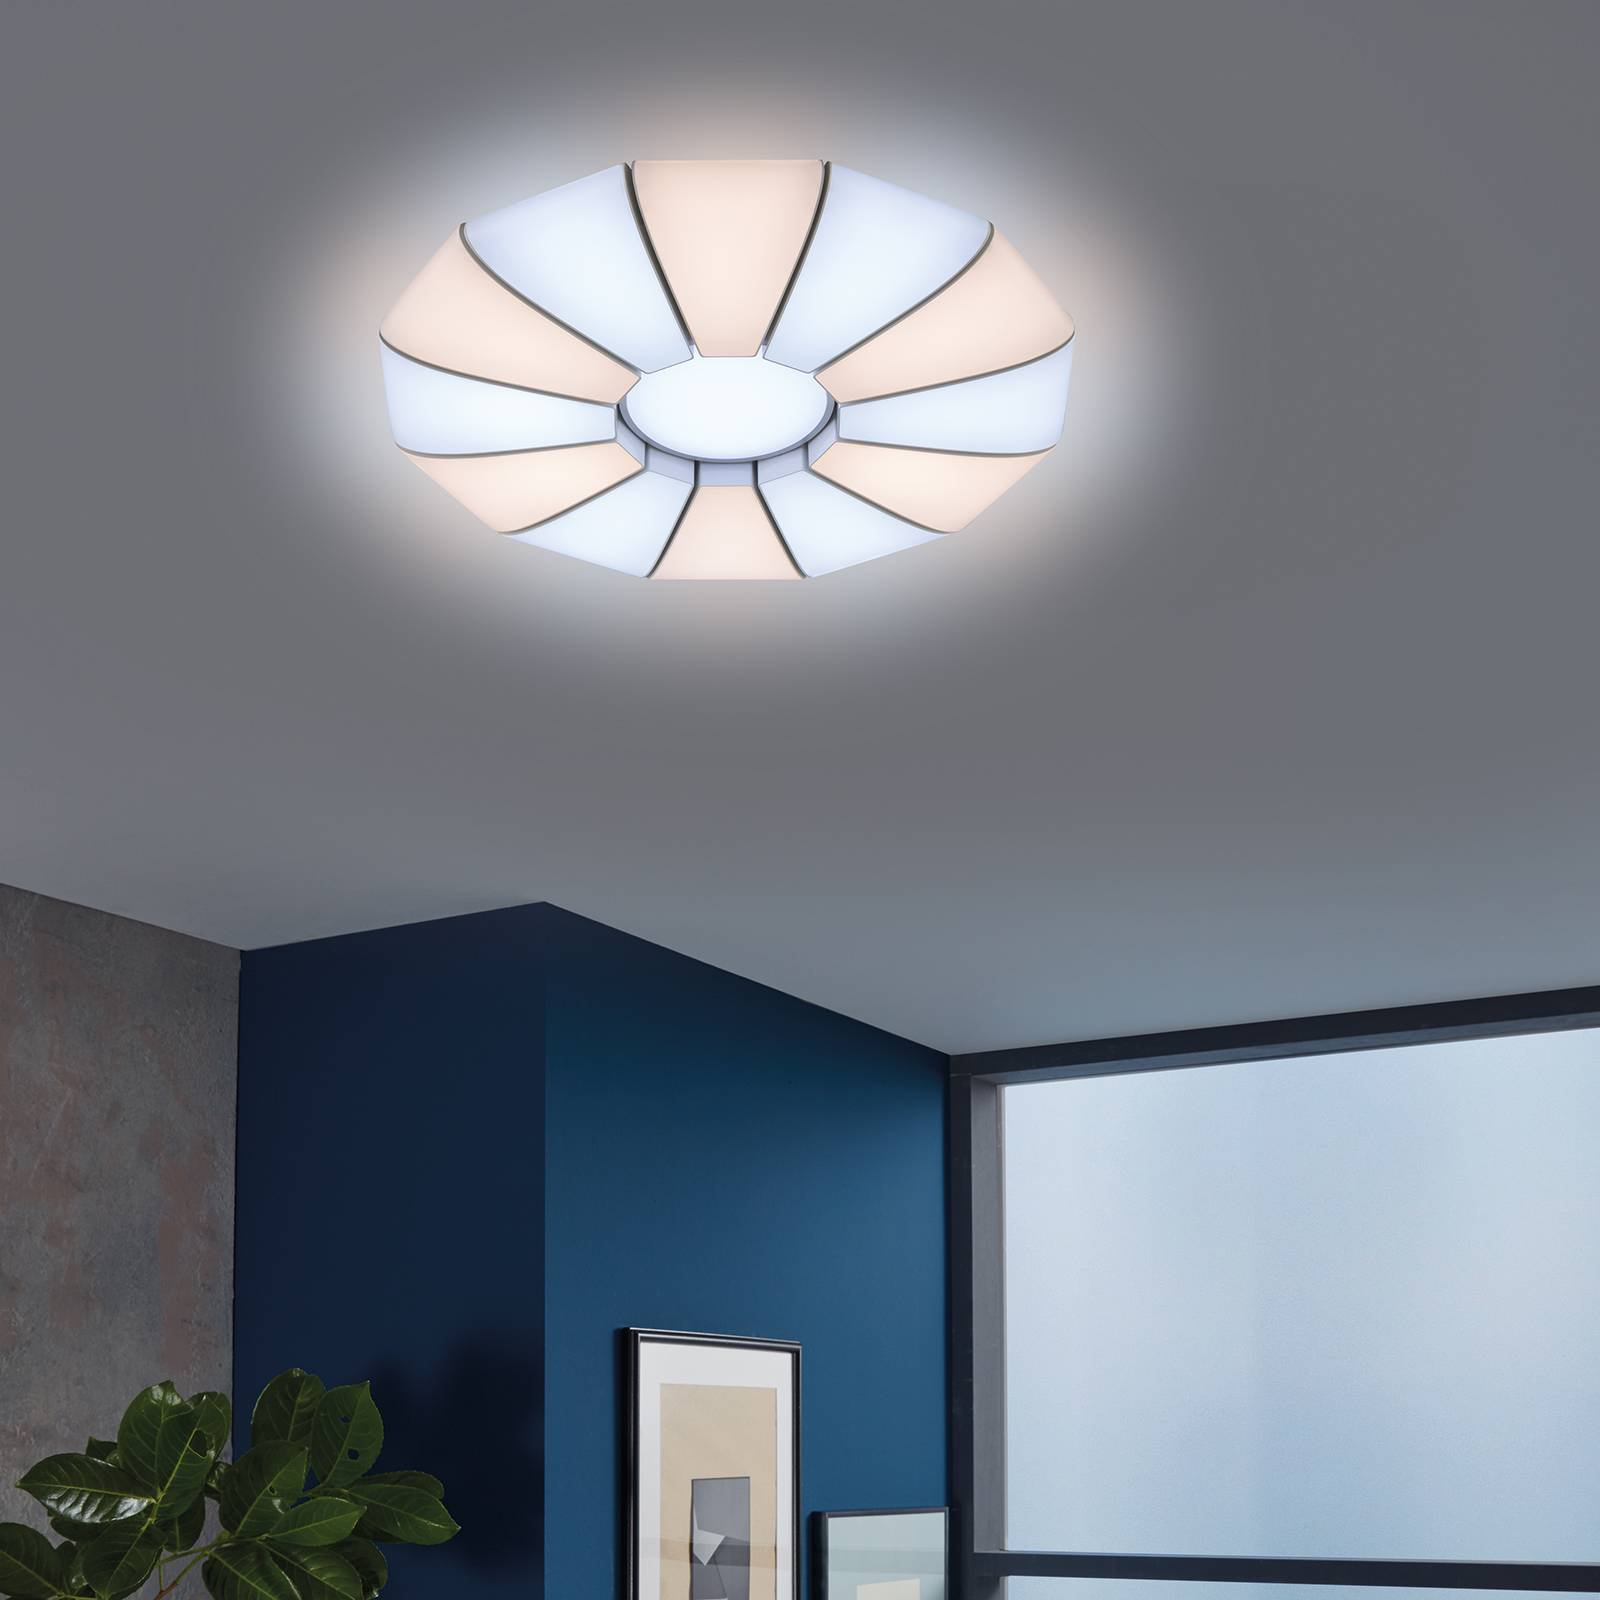 LED-taklampe Roger tunable white, fjernkontroll